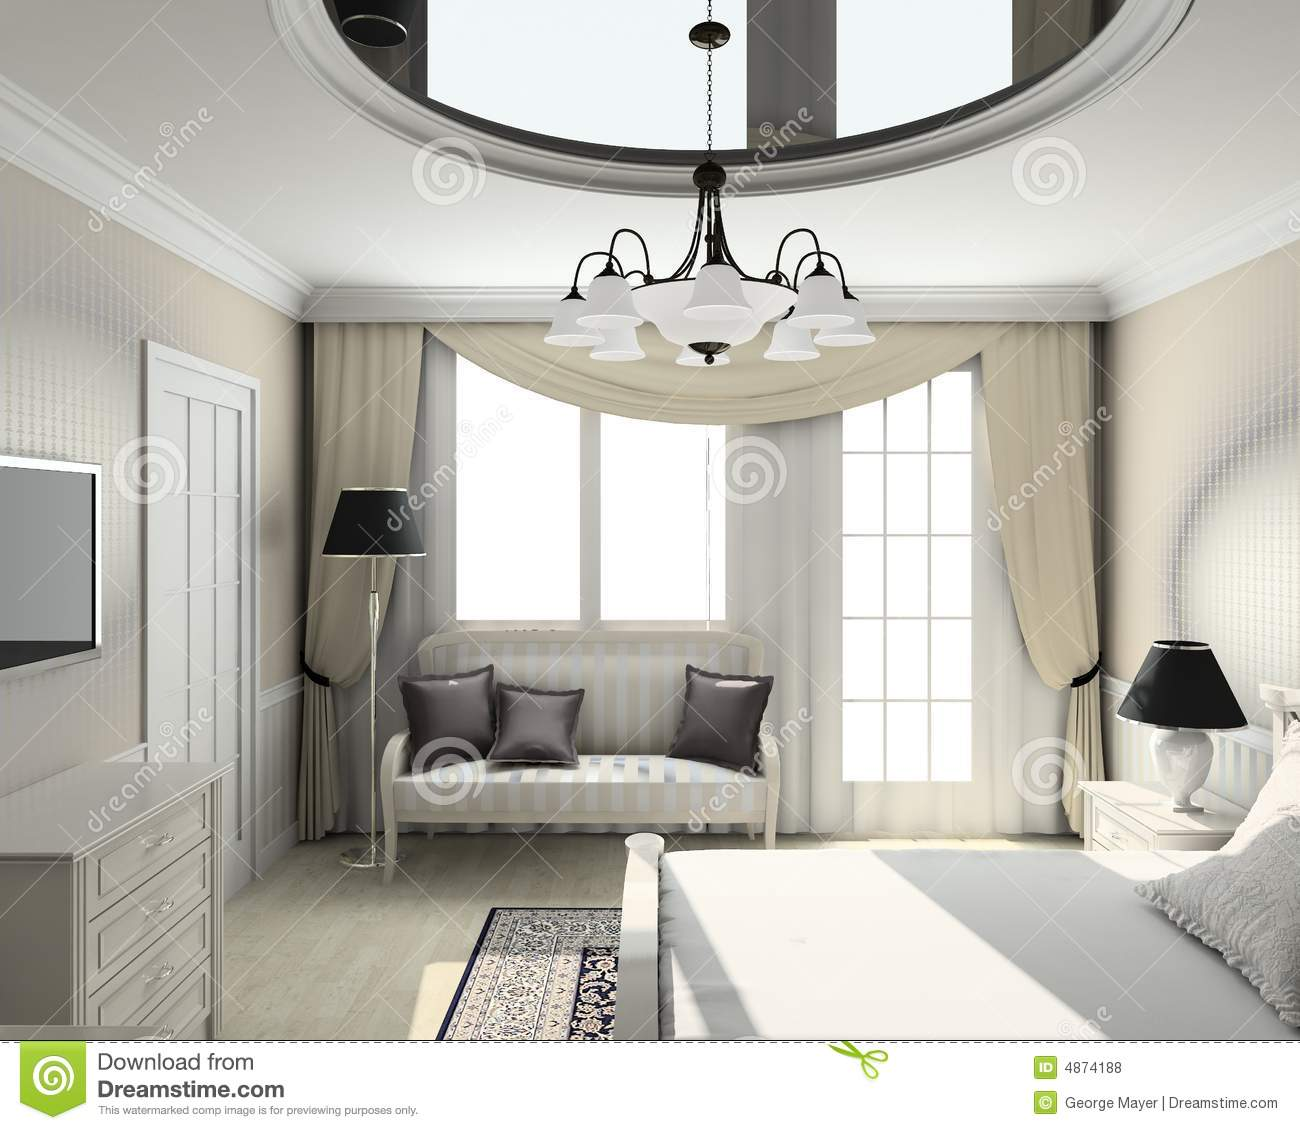 16 Attractive Window Seat Designs For Pleasant Relaxation: 3D Render Classic Interior Of Bedroom Royalty Free Stock